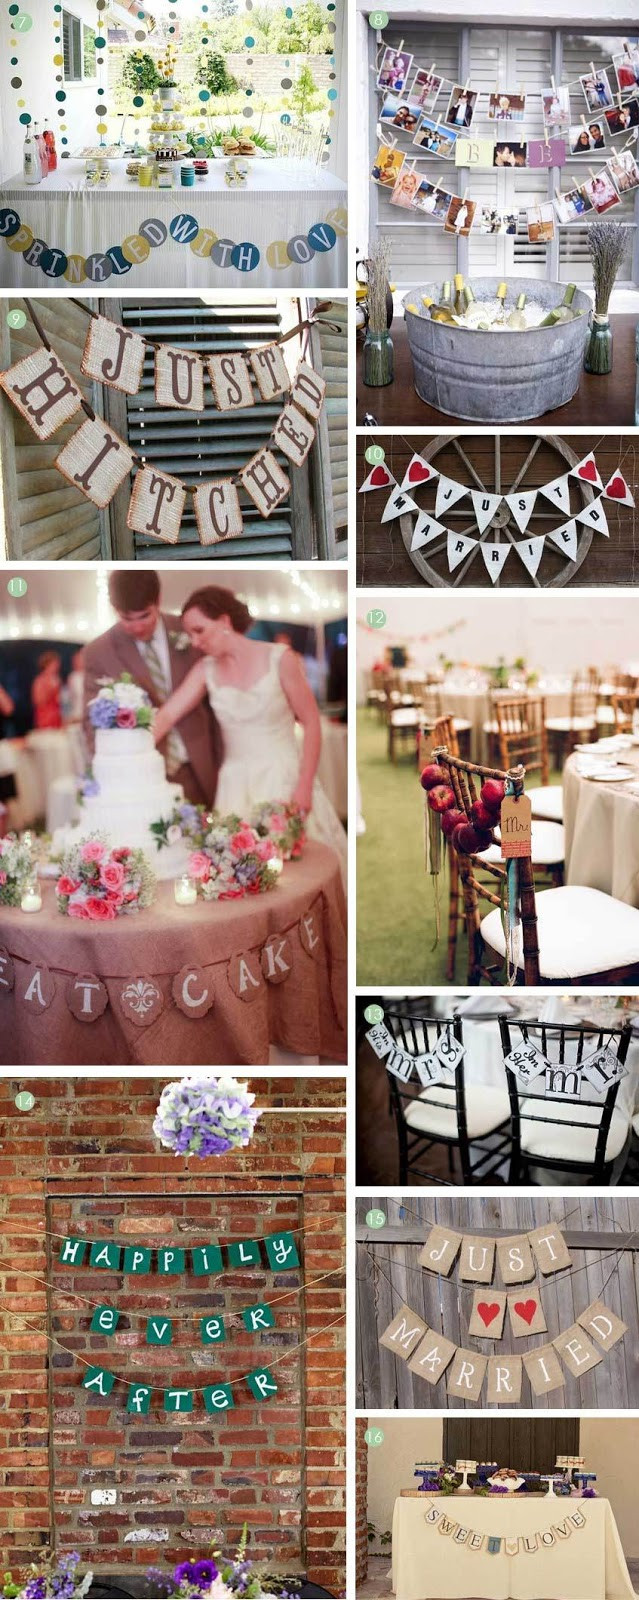 Best ideas about Wedding Banners DIY . Save or Pin Pin by Kylie Gongola on Wedding Now.